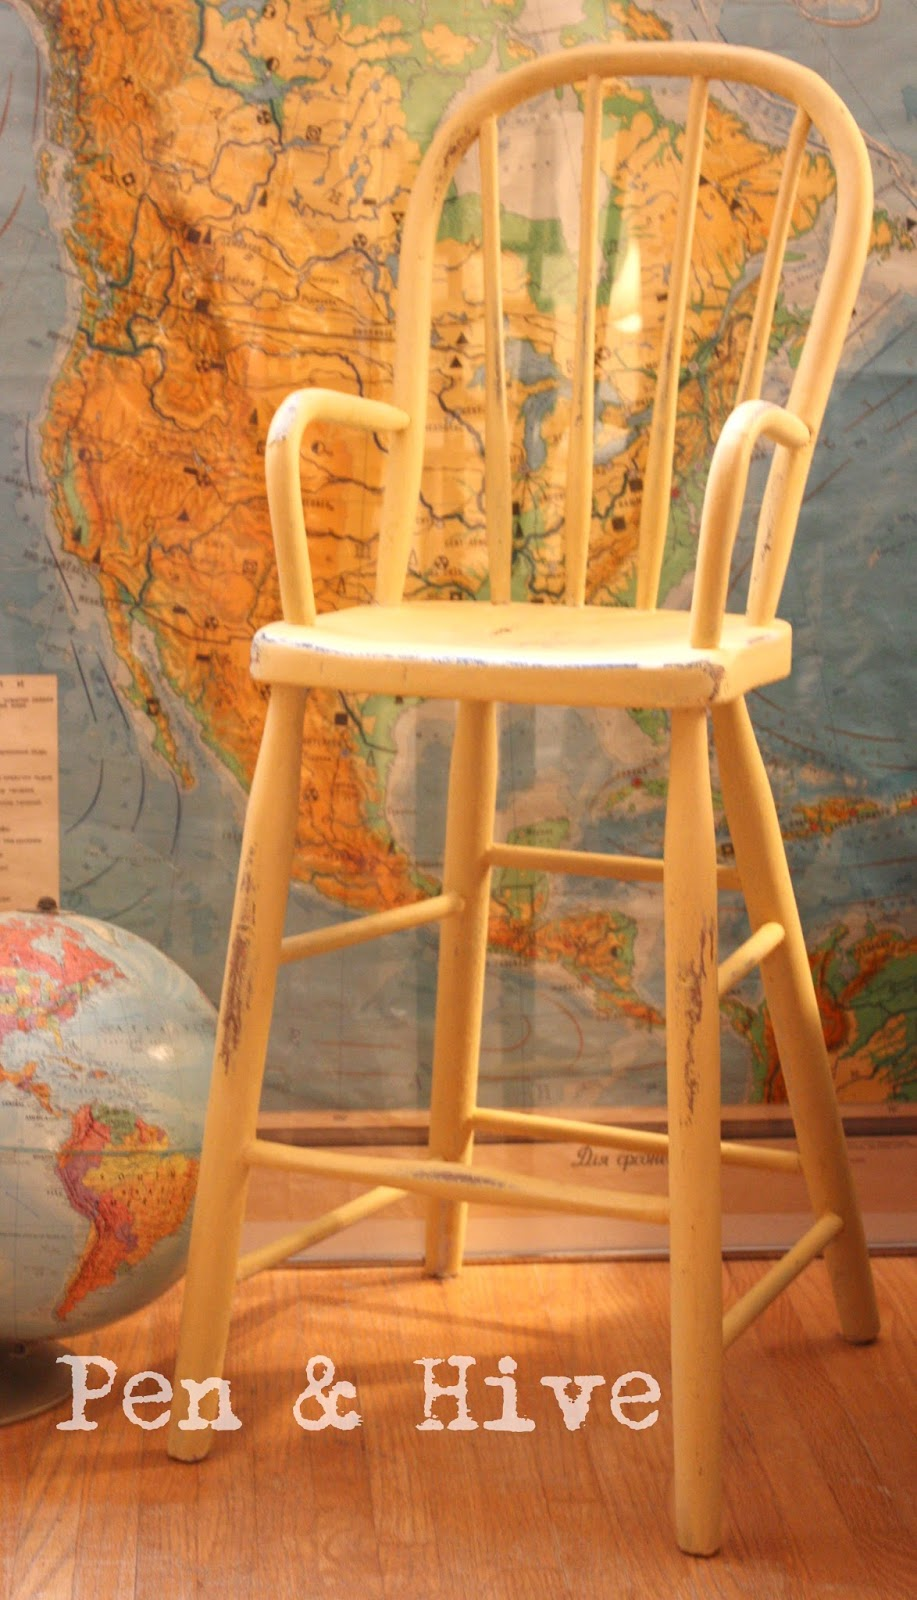 Now that the bees are taken care of for the next few months, and I've put  the garden to bed, I can turn my attention to the inside of my house just  ... - Pen & Hive: Updating An Antique High Chair With An Old Fashioned Finish